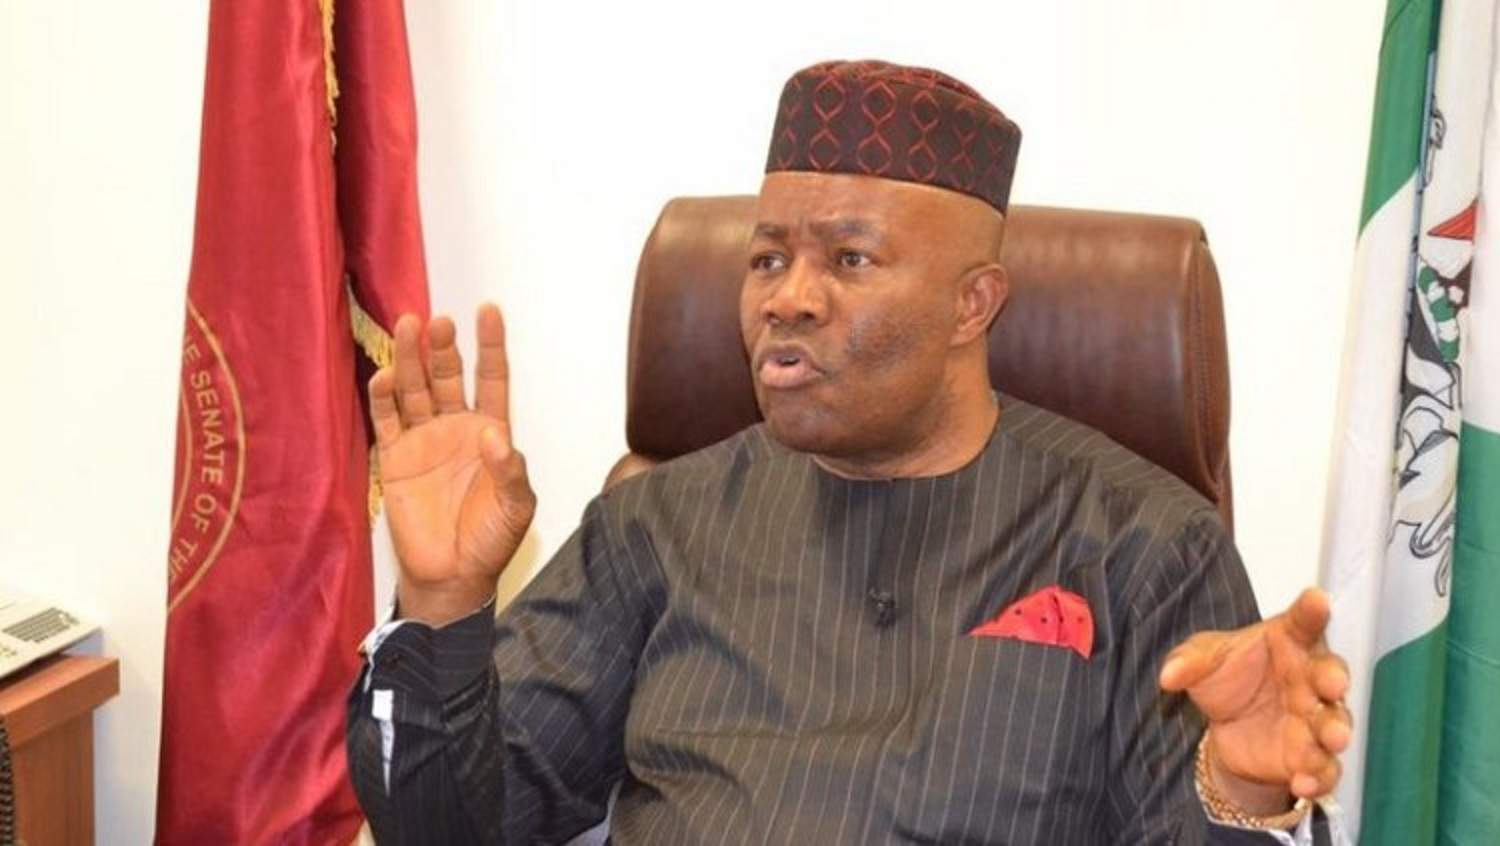 The APC advocates a forum that supports Akpabio as a 'natural leader' in Akwa Ibom